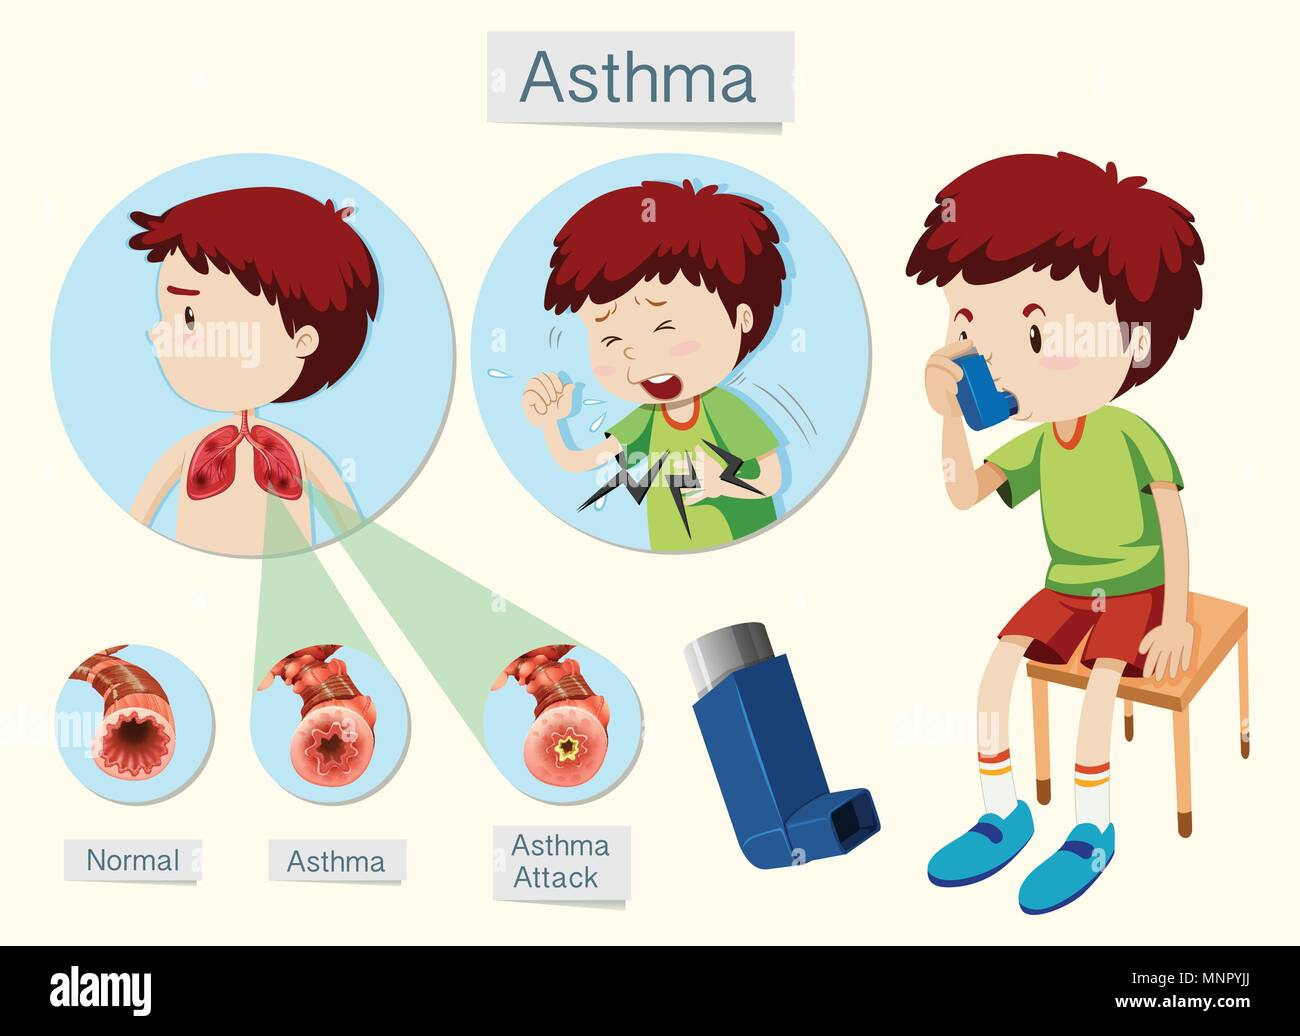 Bronchial Asthma Lung Stock Photos & Bronchial Asthma Lung Stock ...